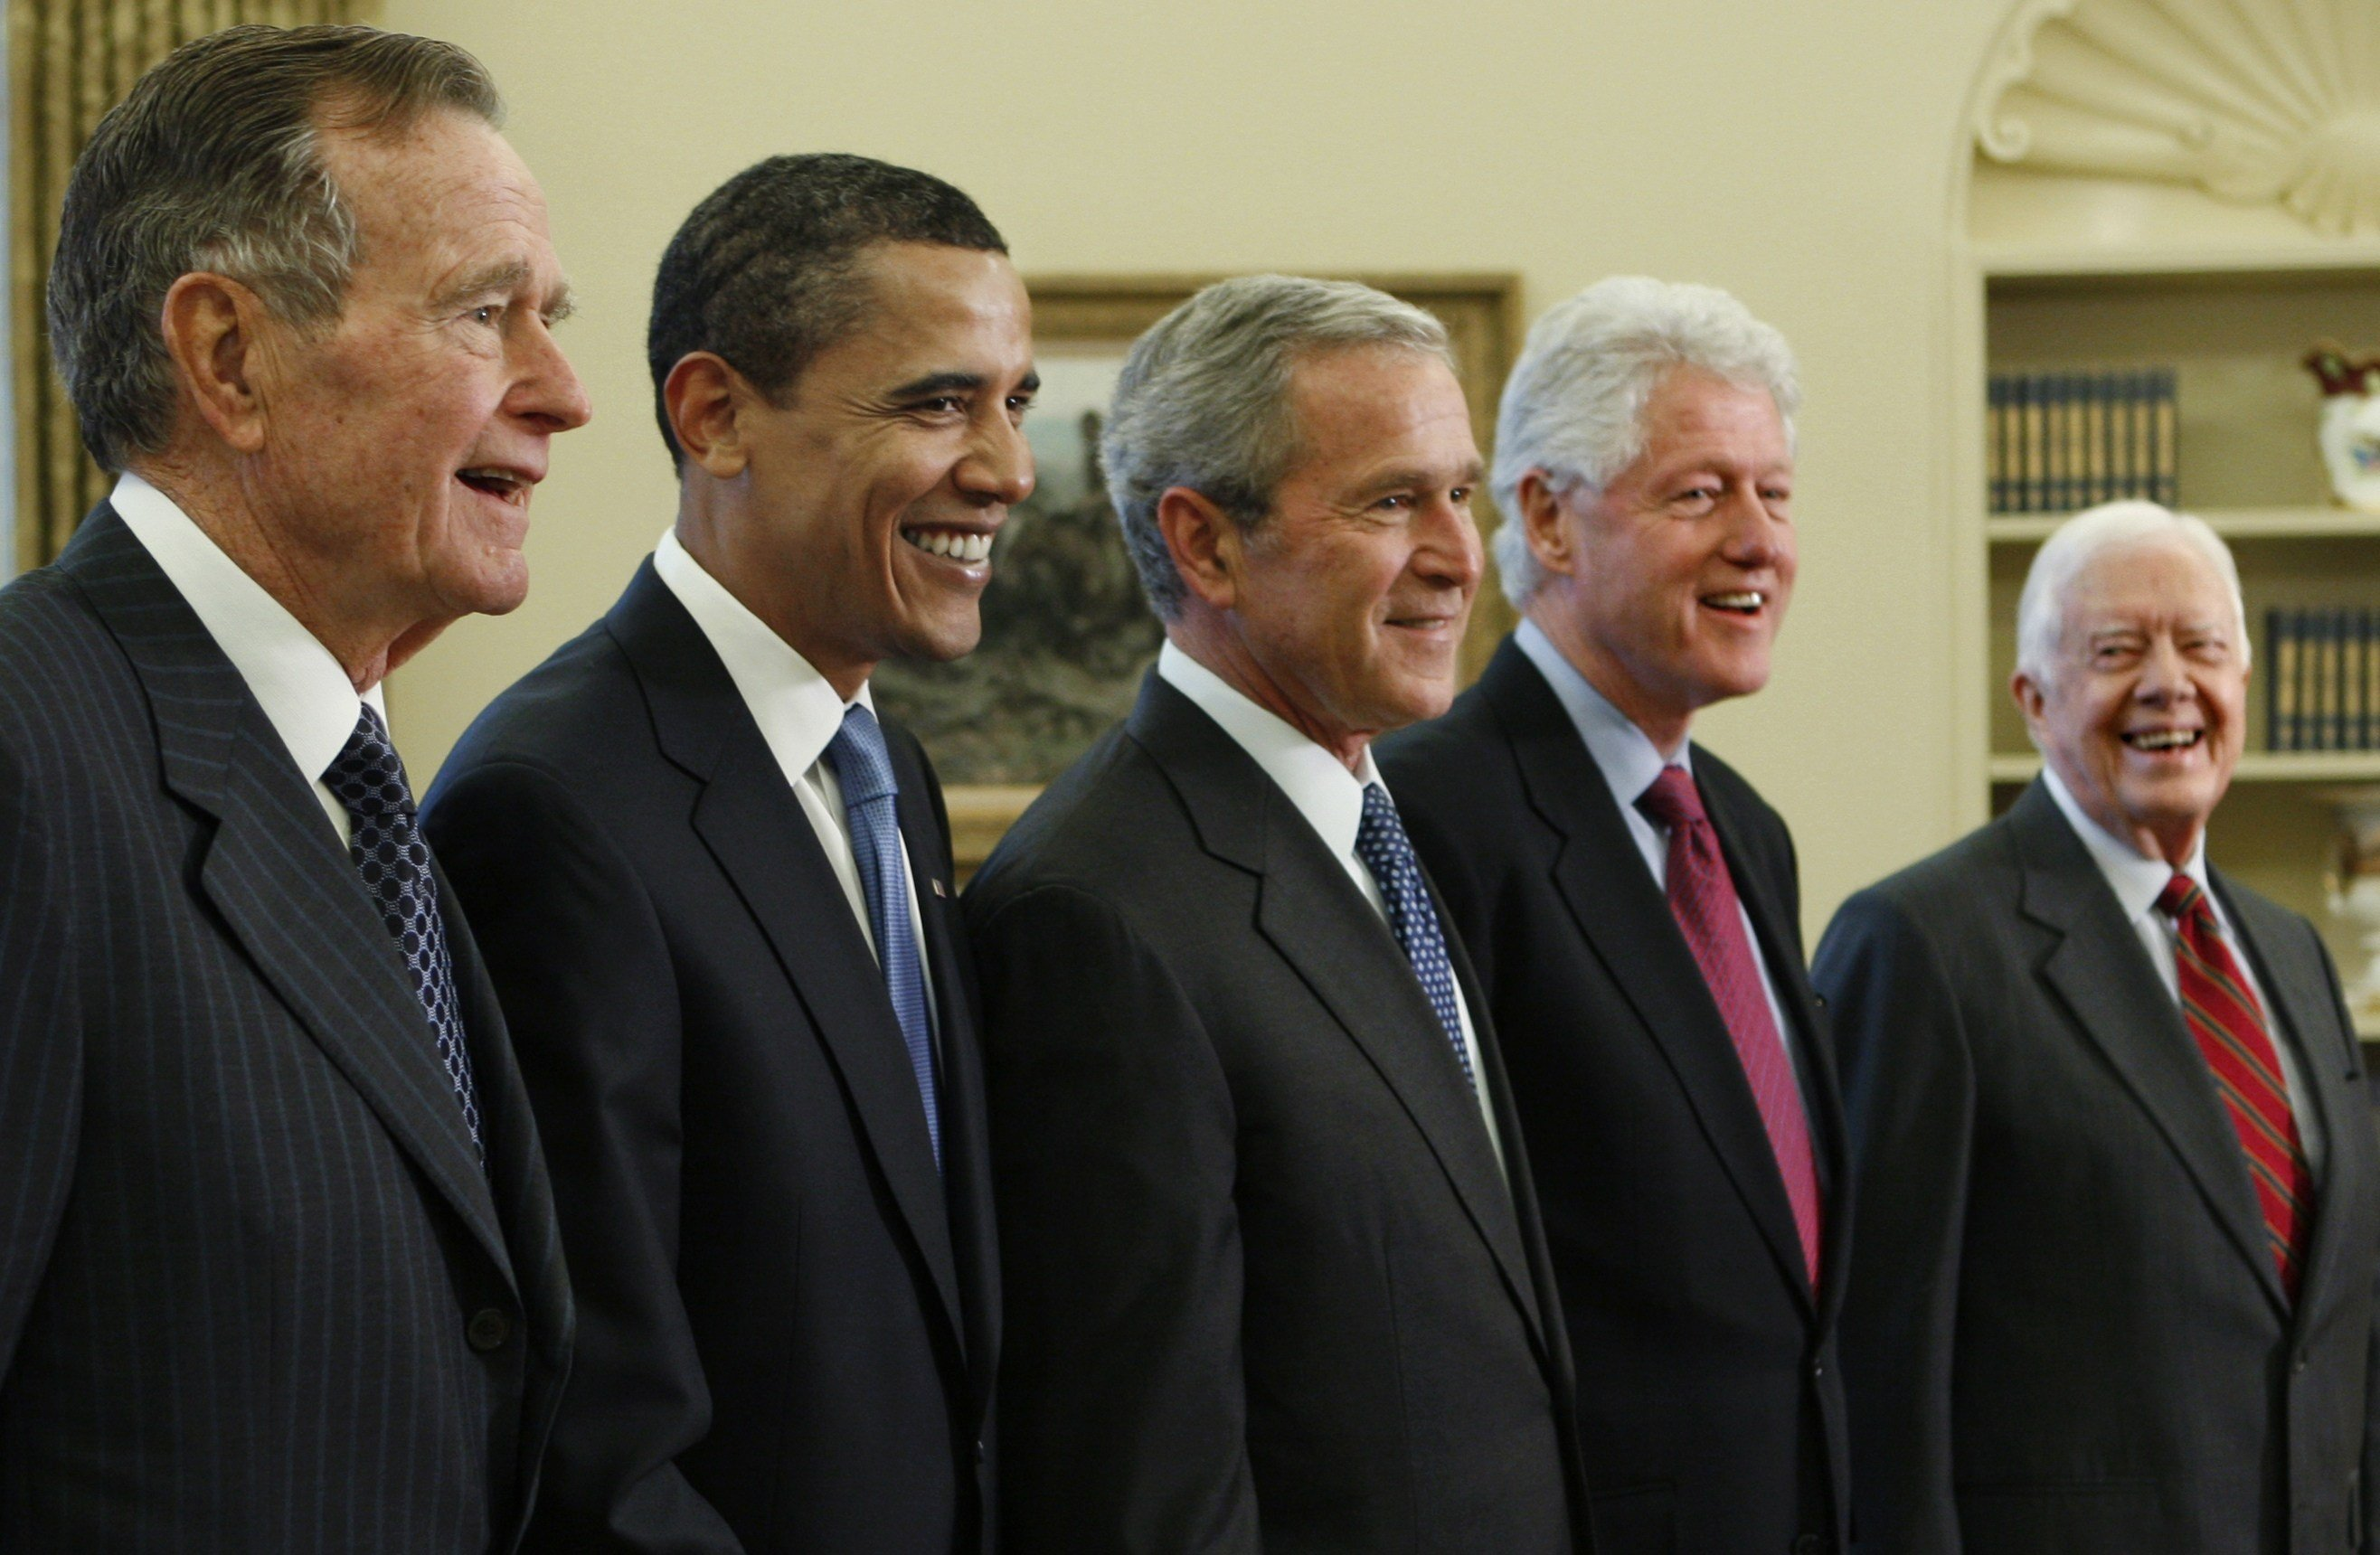 President George W. Bush, center, poses with President-elect Barack Obama, and former presidents, from left, George H.W. Bush, left, Bill Clinton and Jimmy Carter, right, Wednesday, Jan. 7, 2009, in the Oval Office of the White House in Washington. (AP Ph